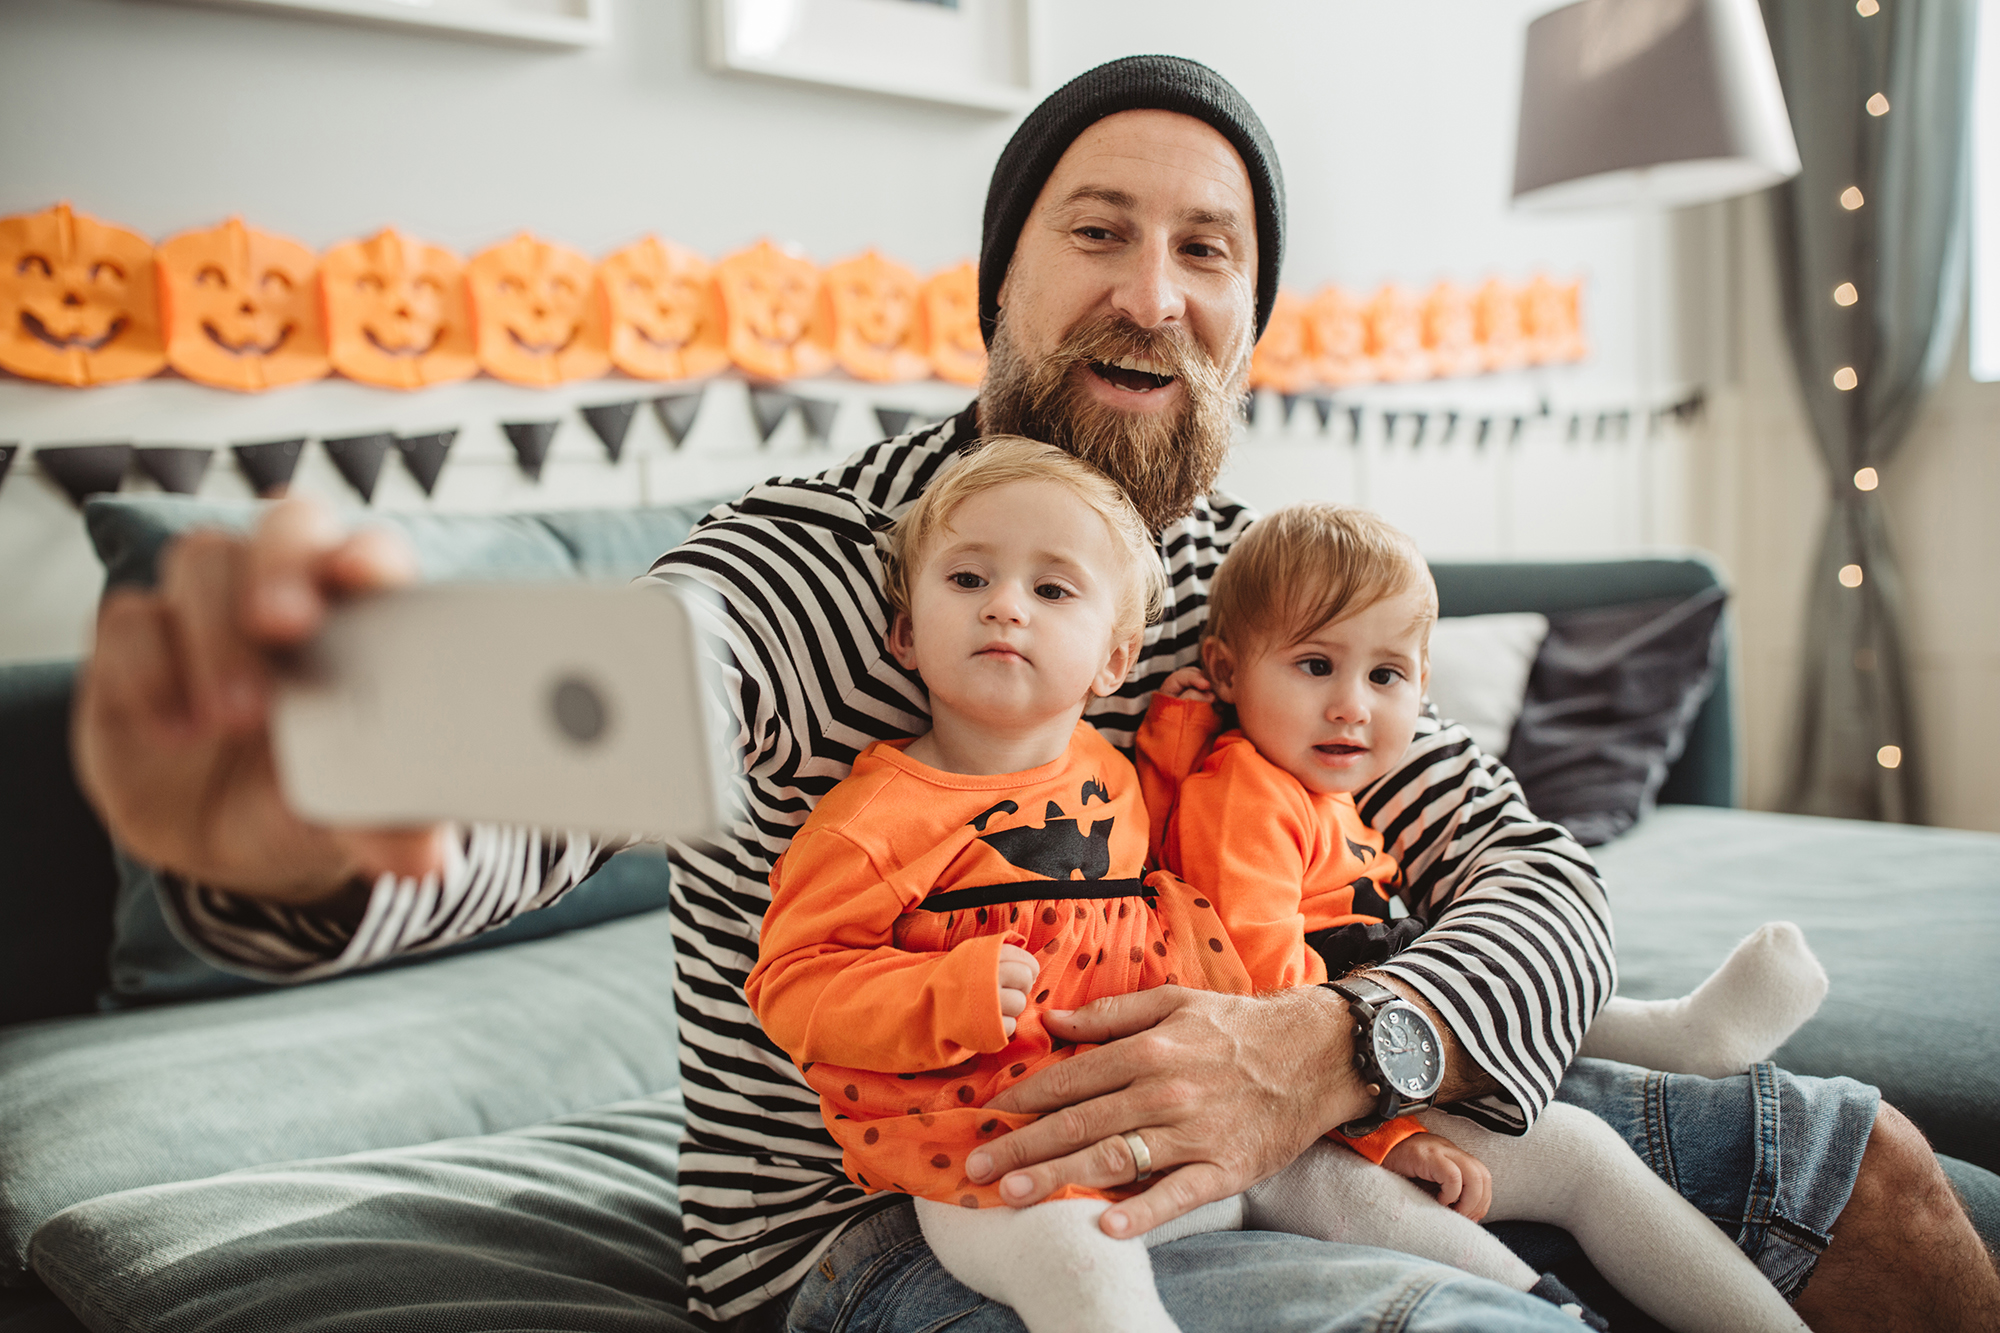 Dad and two kids take part in virtual costume party via video chat